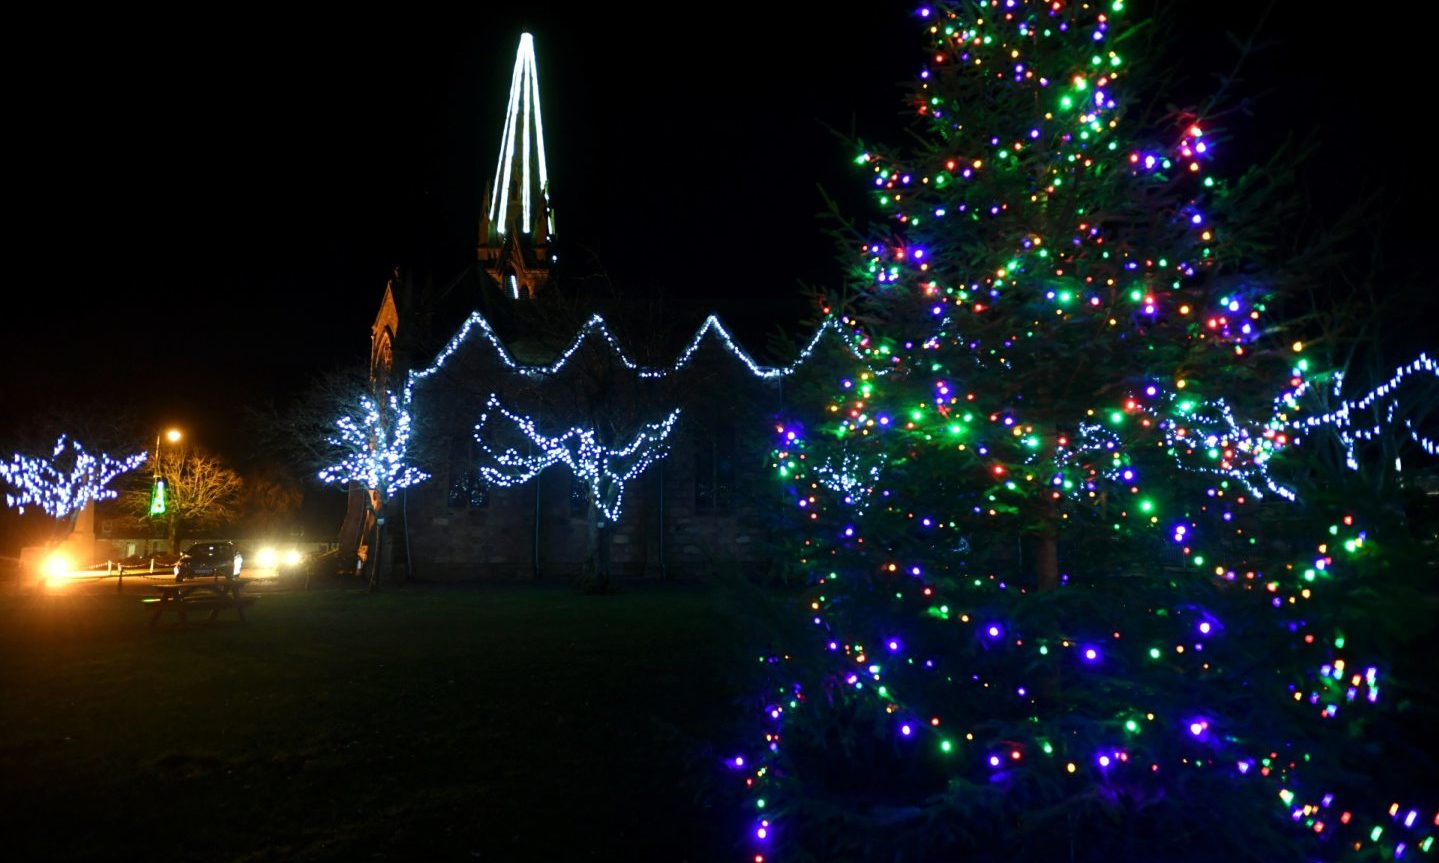 Christmas lights adorned trees and buildings throughout Ballater in December.